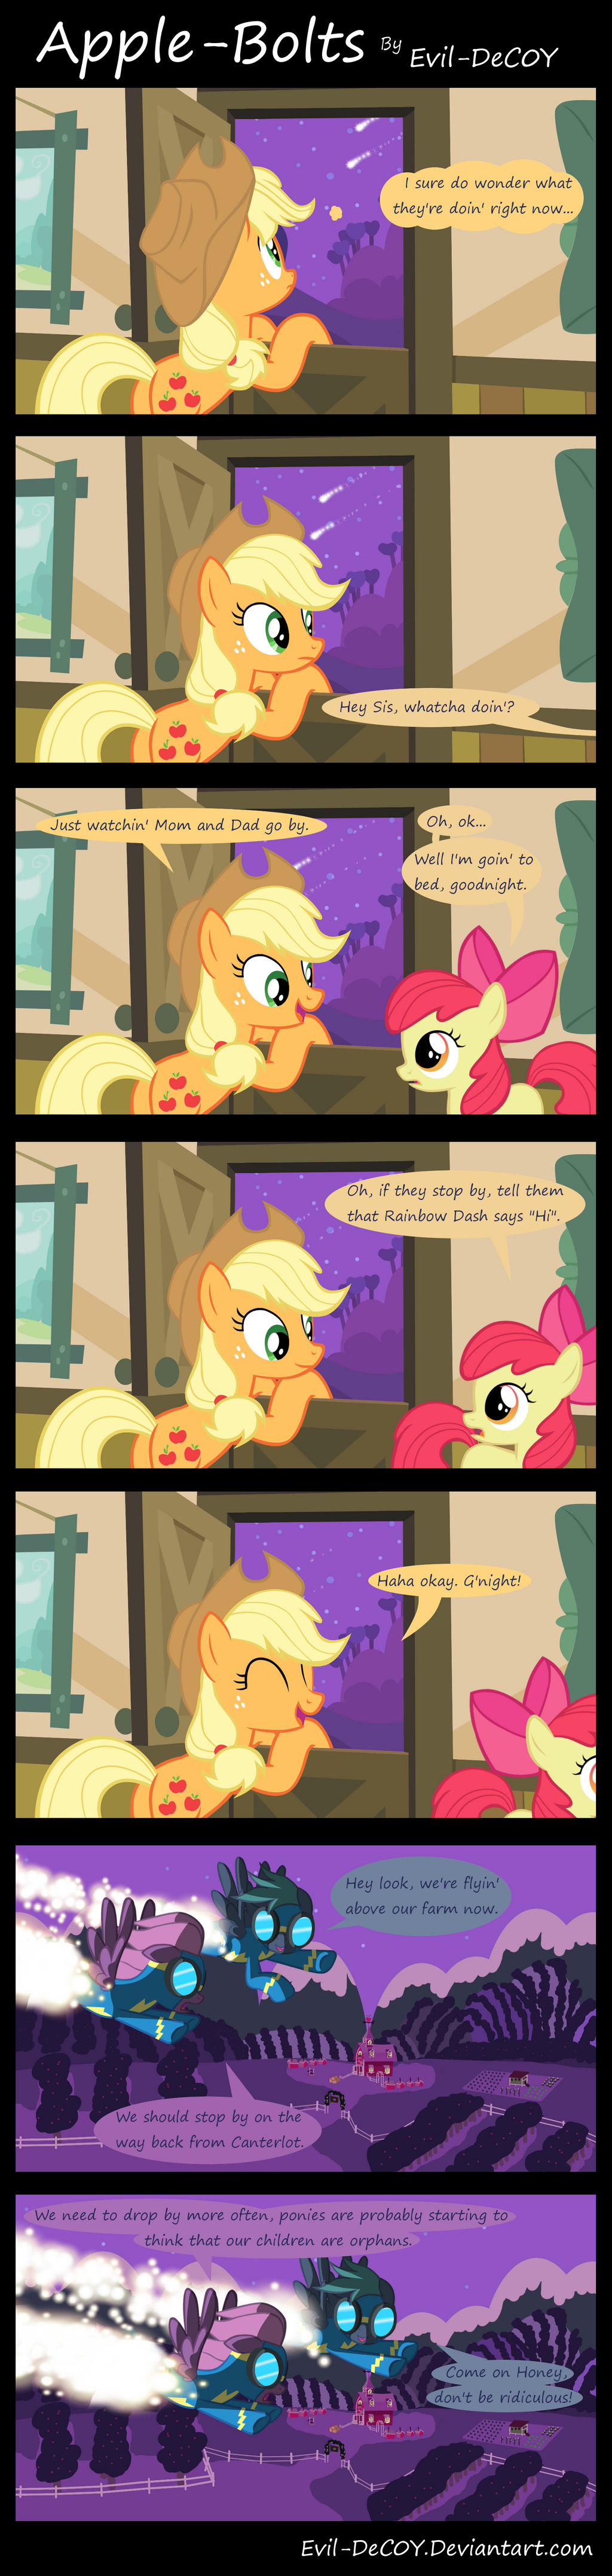 Apple-Bolts by Evil-DeC0Y